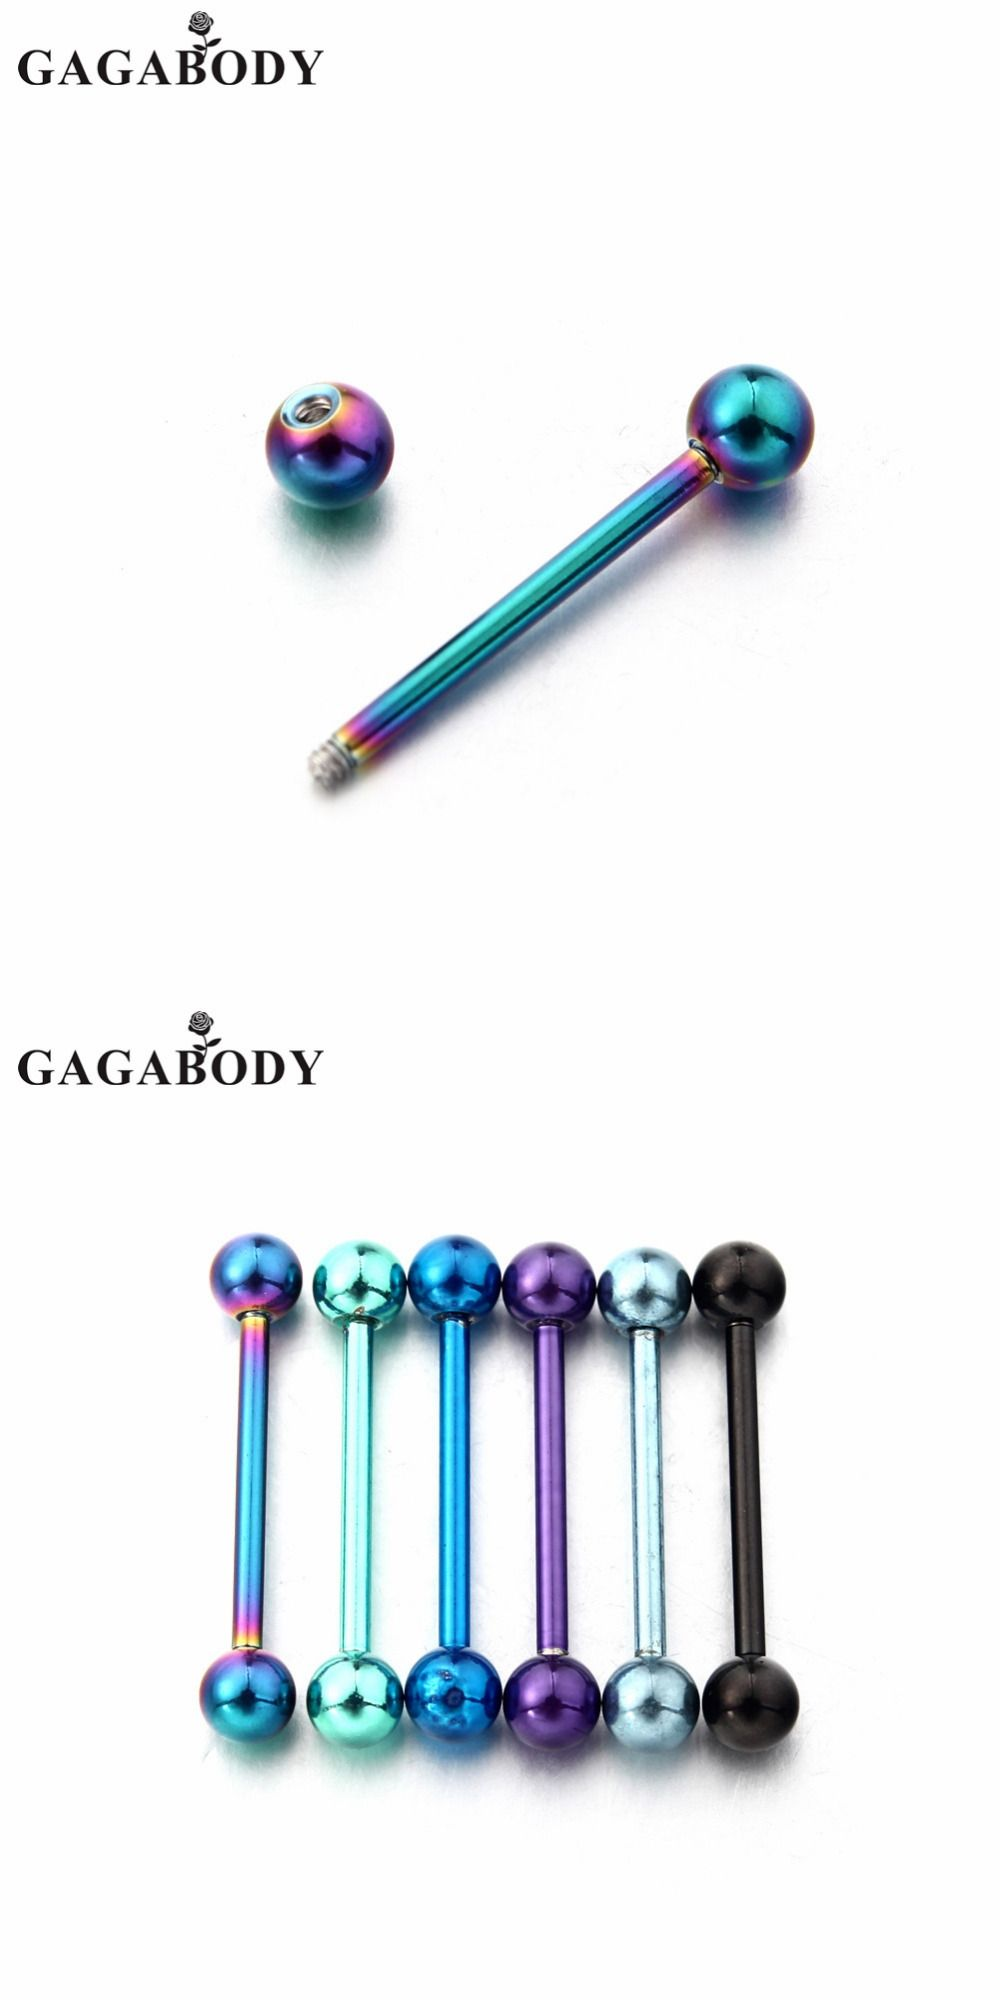 Body piercing jewelry  GAGA G Titanium Anodized Surgical Steel Nipple Tongue Ring Barbell